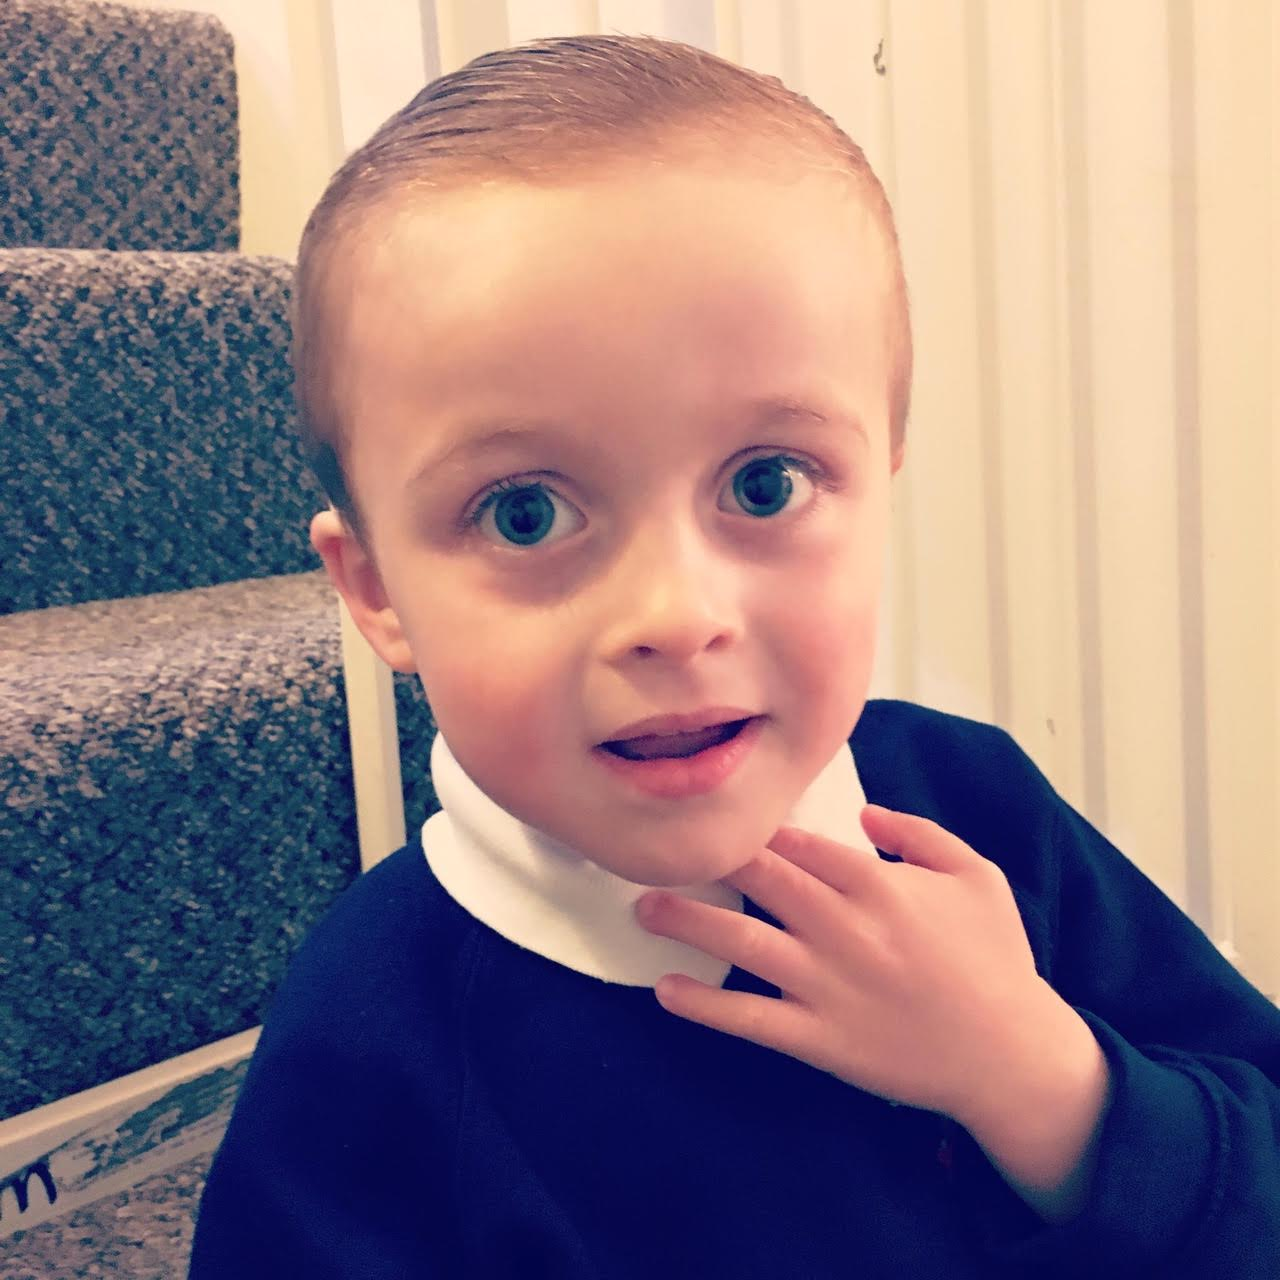 Hugo was diagnosed with the condition just after he turned four years old.